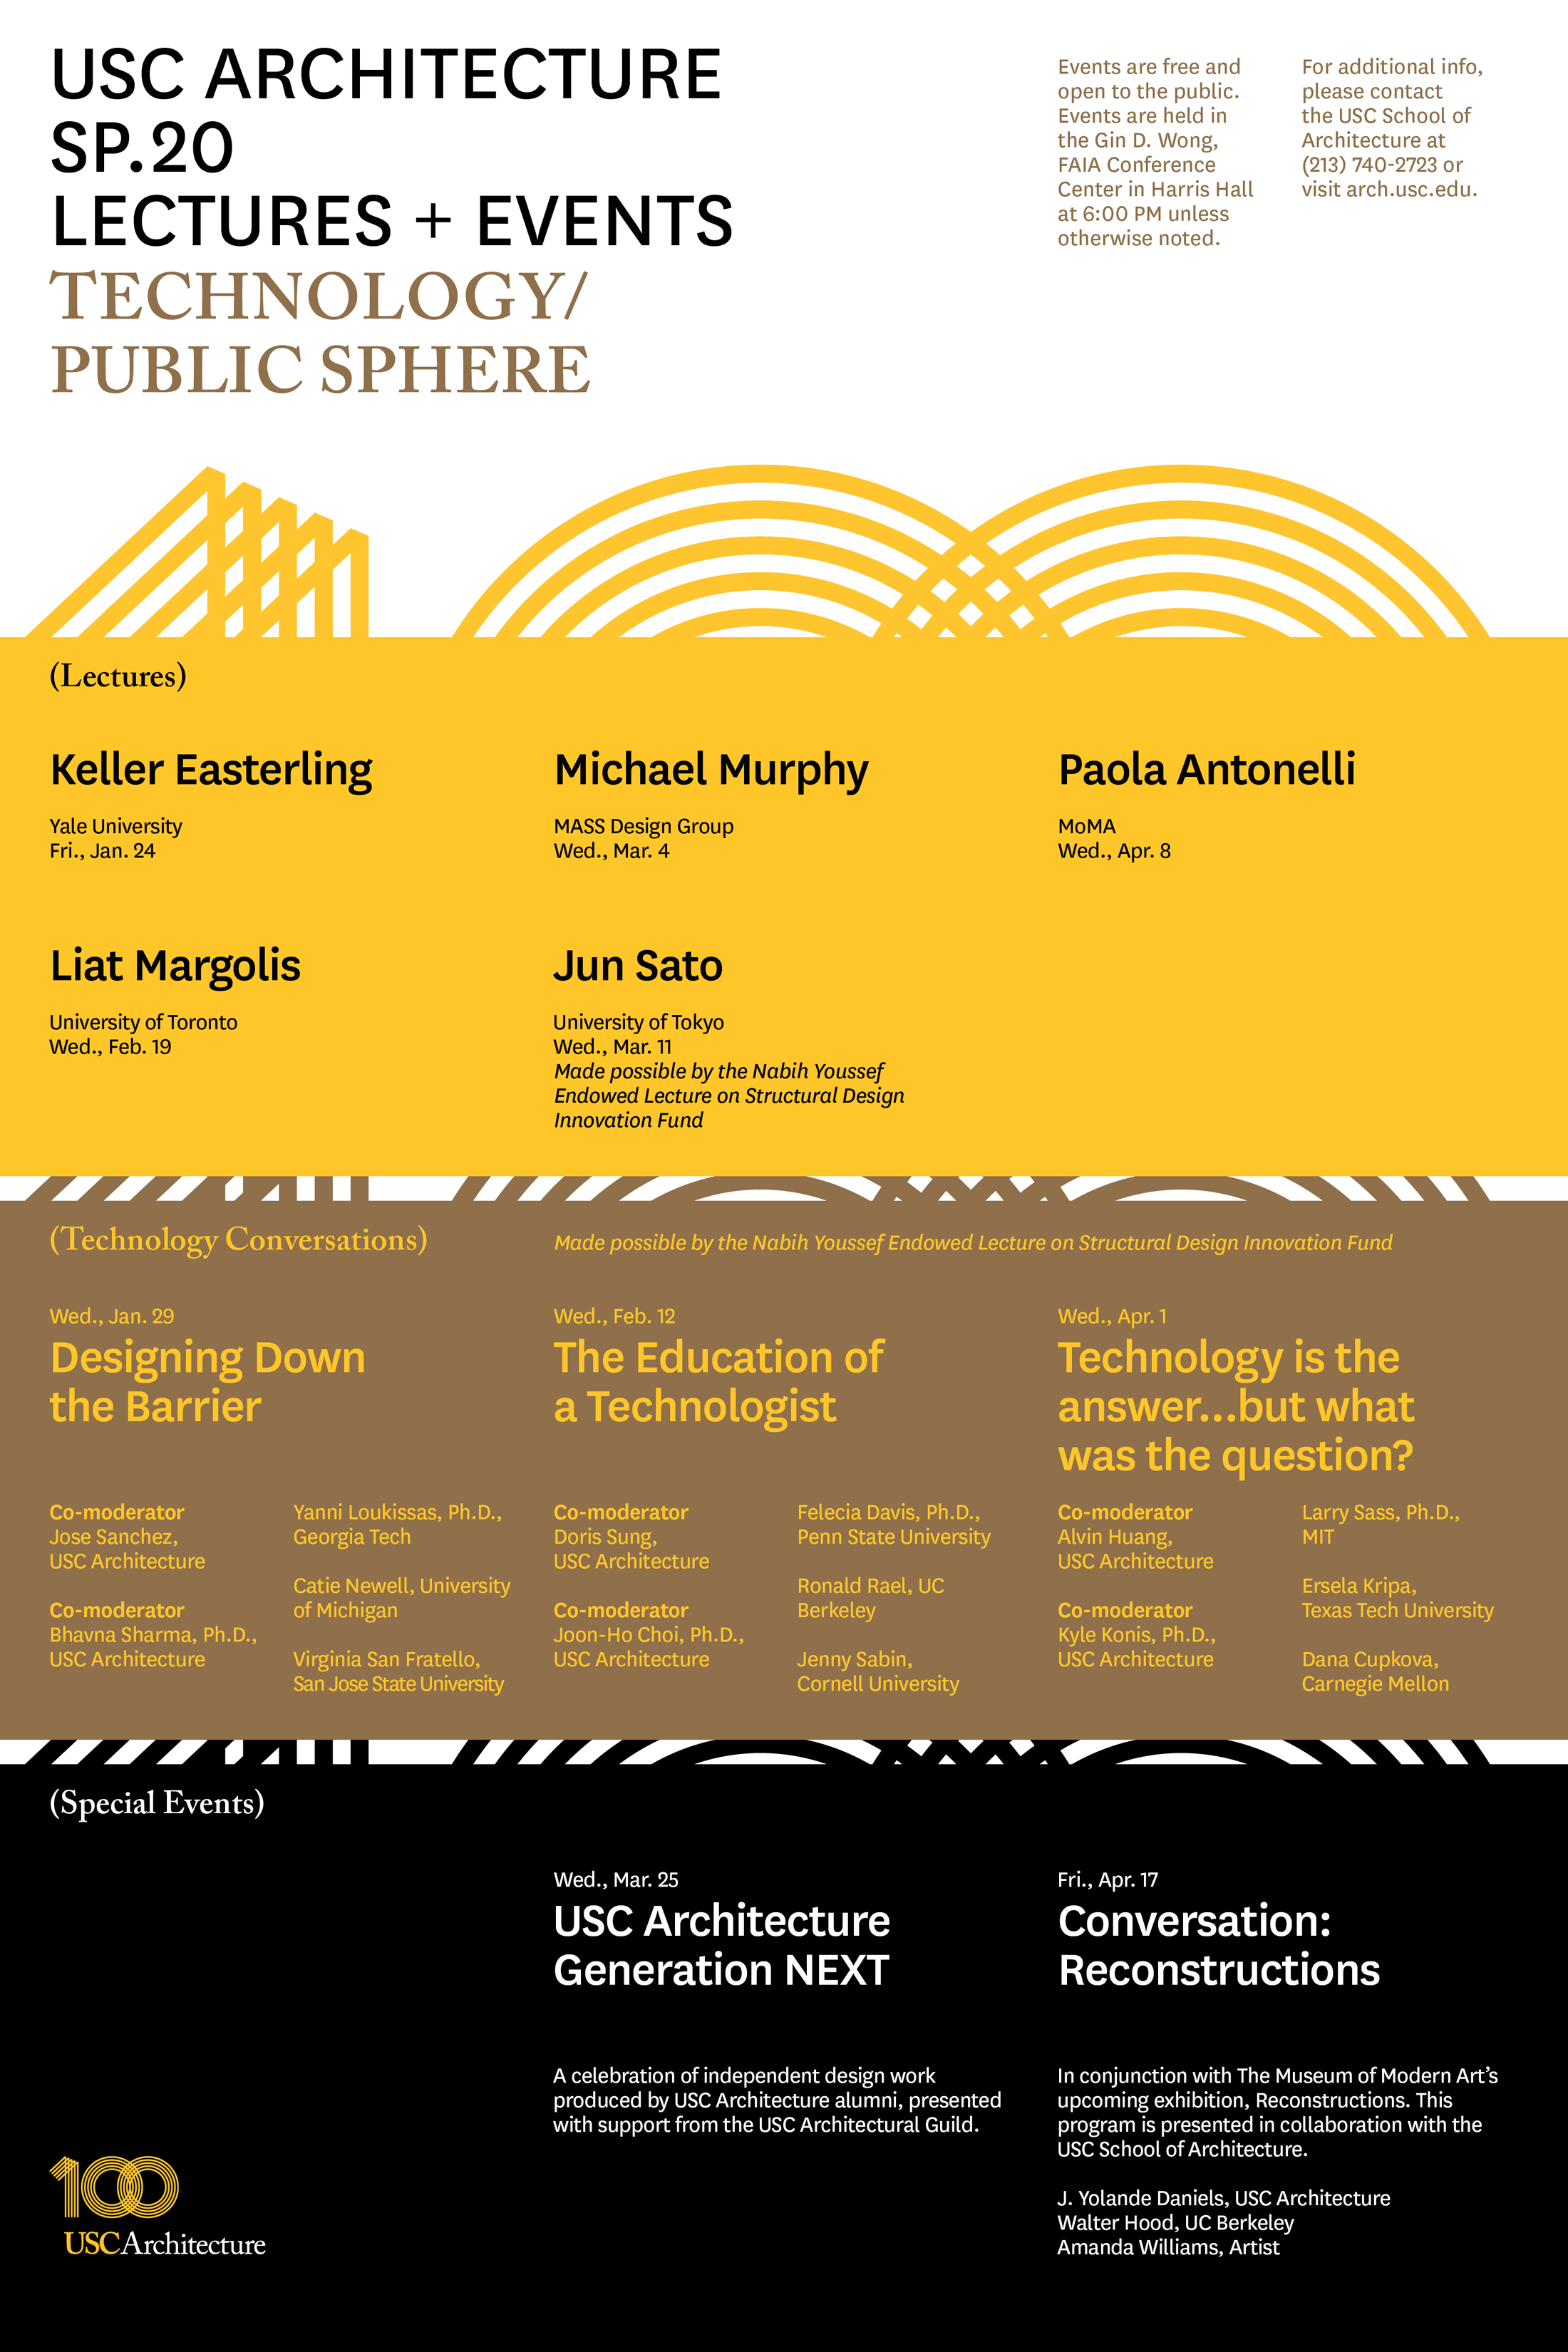 Free and open to the public, the highly anticipated spring lineup features prominent architecture & art industry leaders exploring how emerging technologies influence the public sphere & design